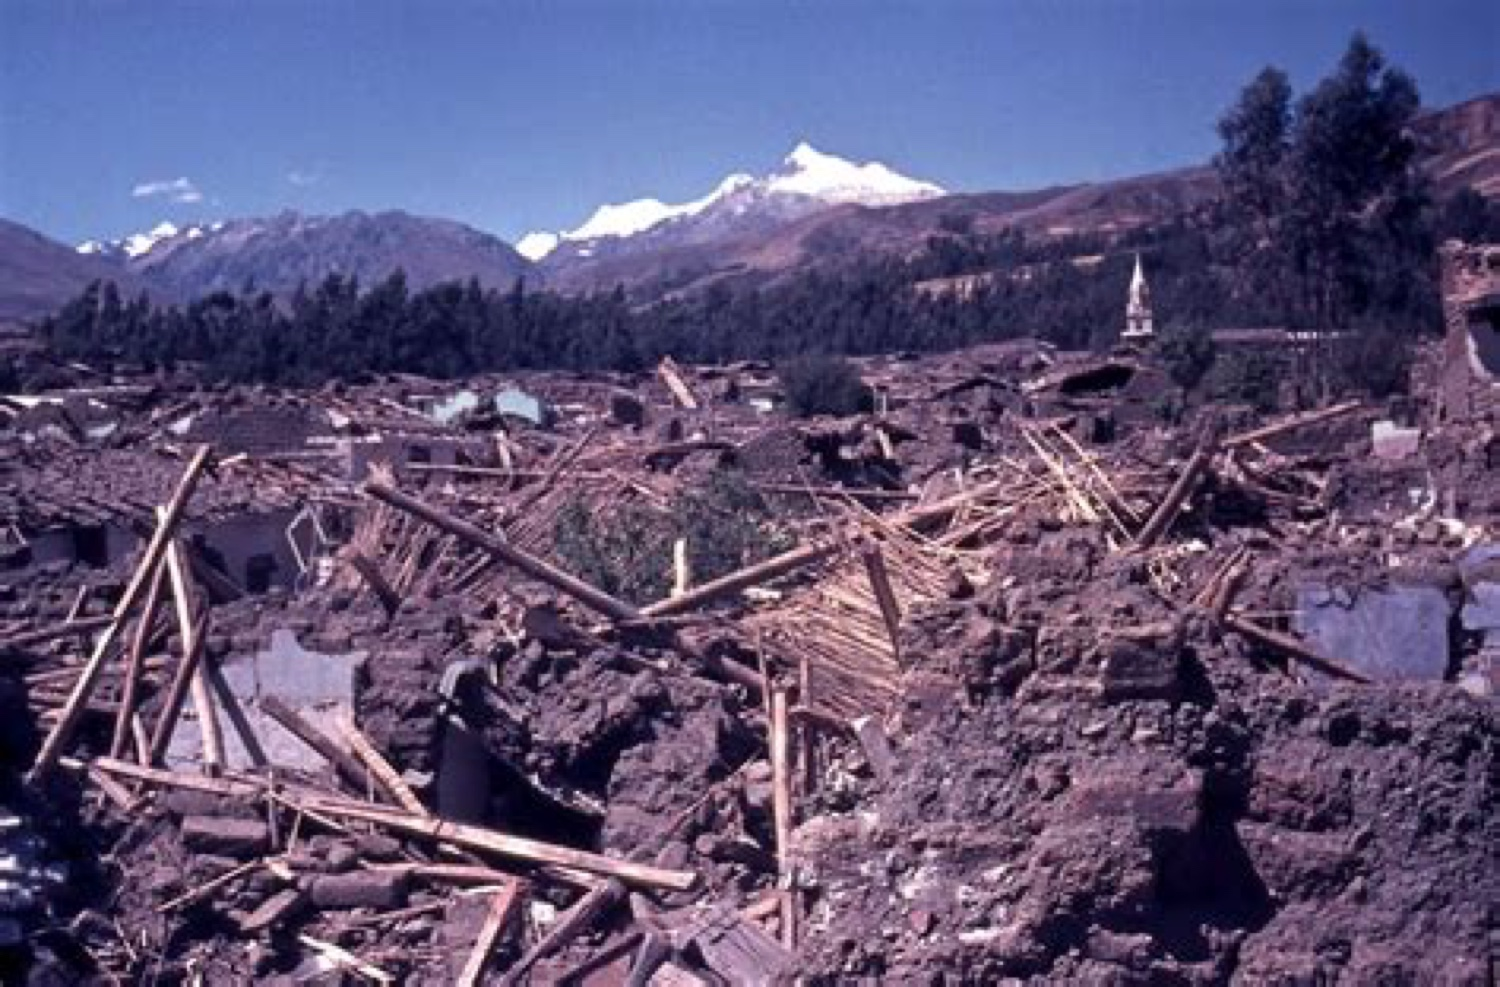 95% of Huaraz was completely destroyed in the 1970 earthquake.